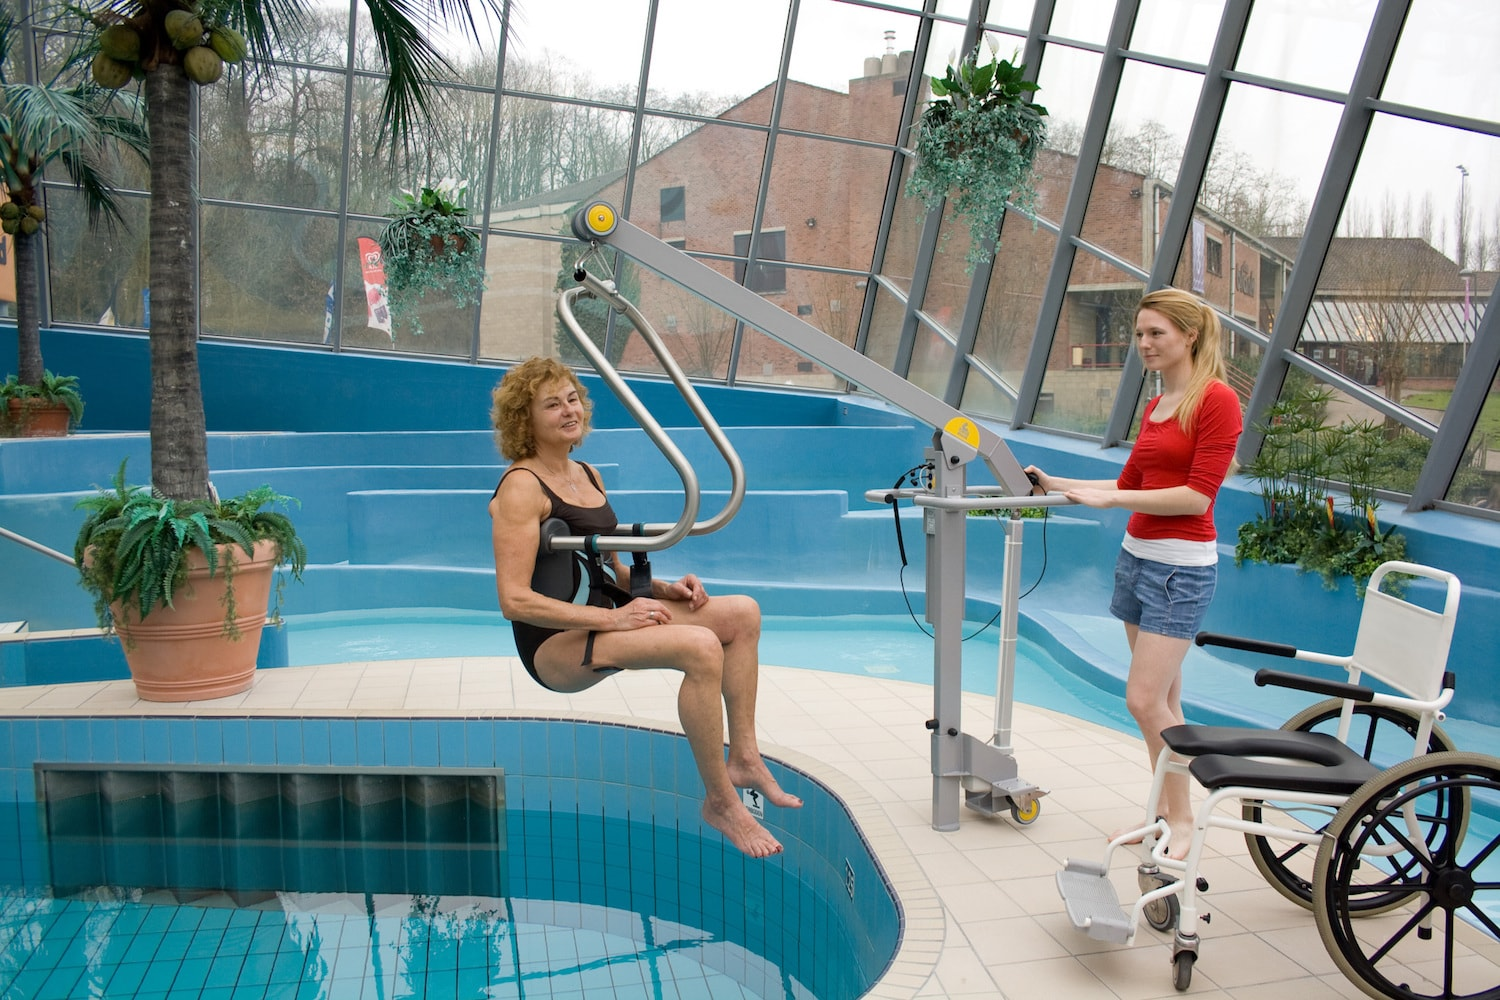 handi-move-mobile-pool-lift-body-support-system.jpg